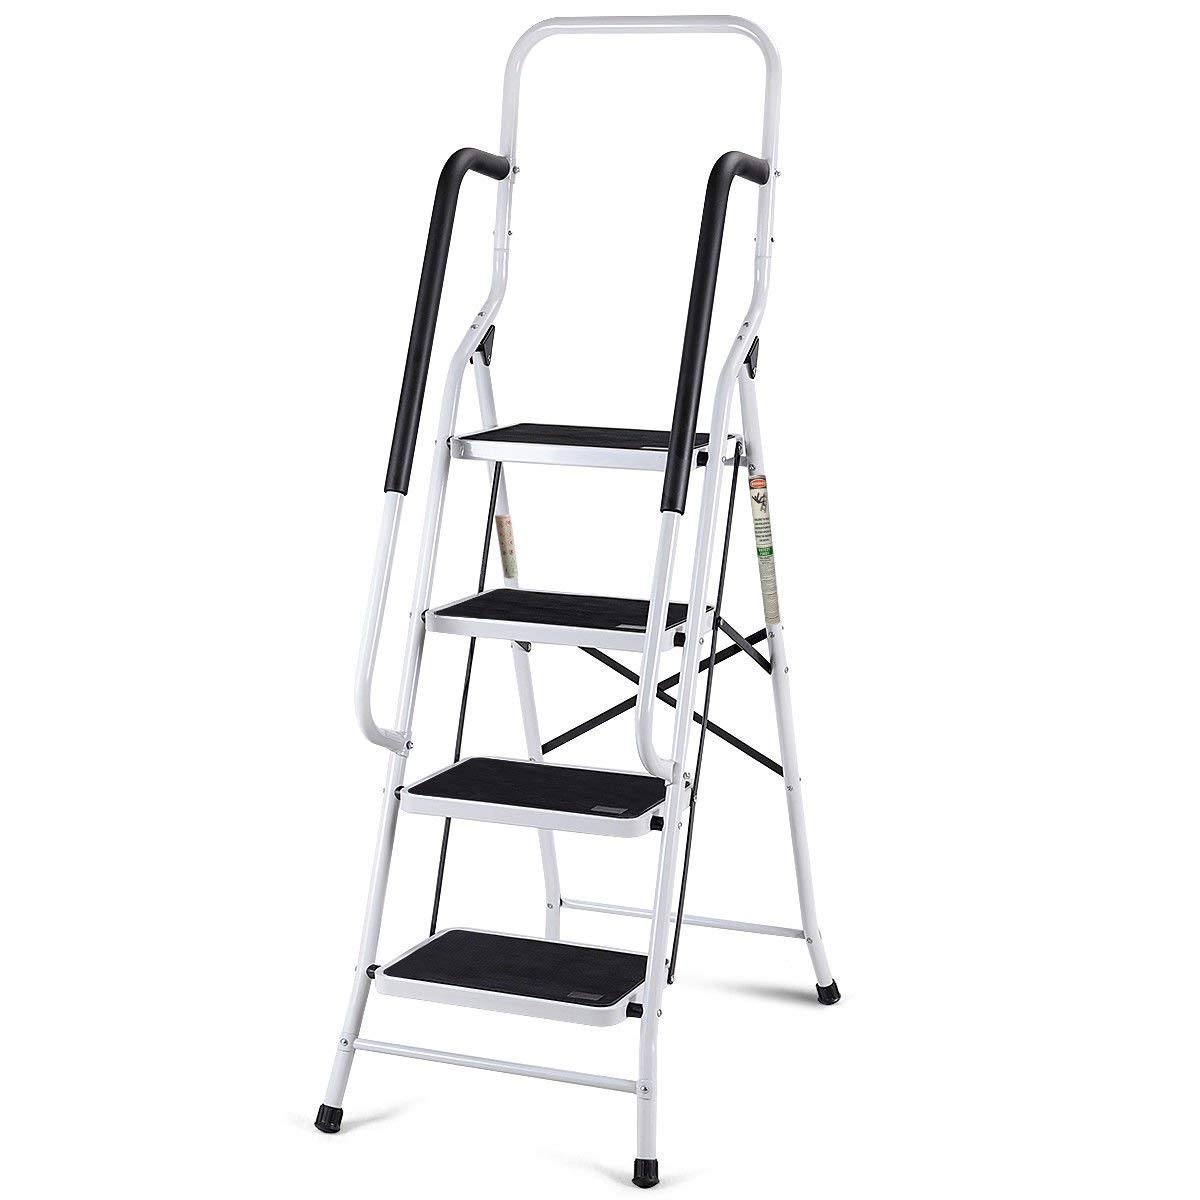 Giantex 2 in 1 Non-Slip Step Ladder Folding Stool w/Handrails and Tool Pouch Caddy (4 Step Ladder) by Giantex (Image #1)